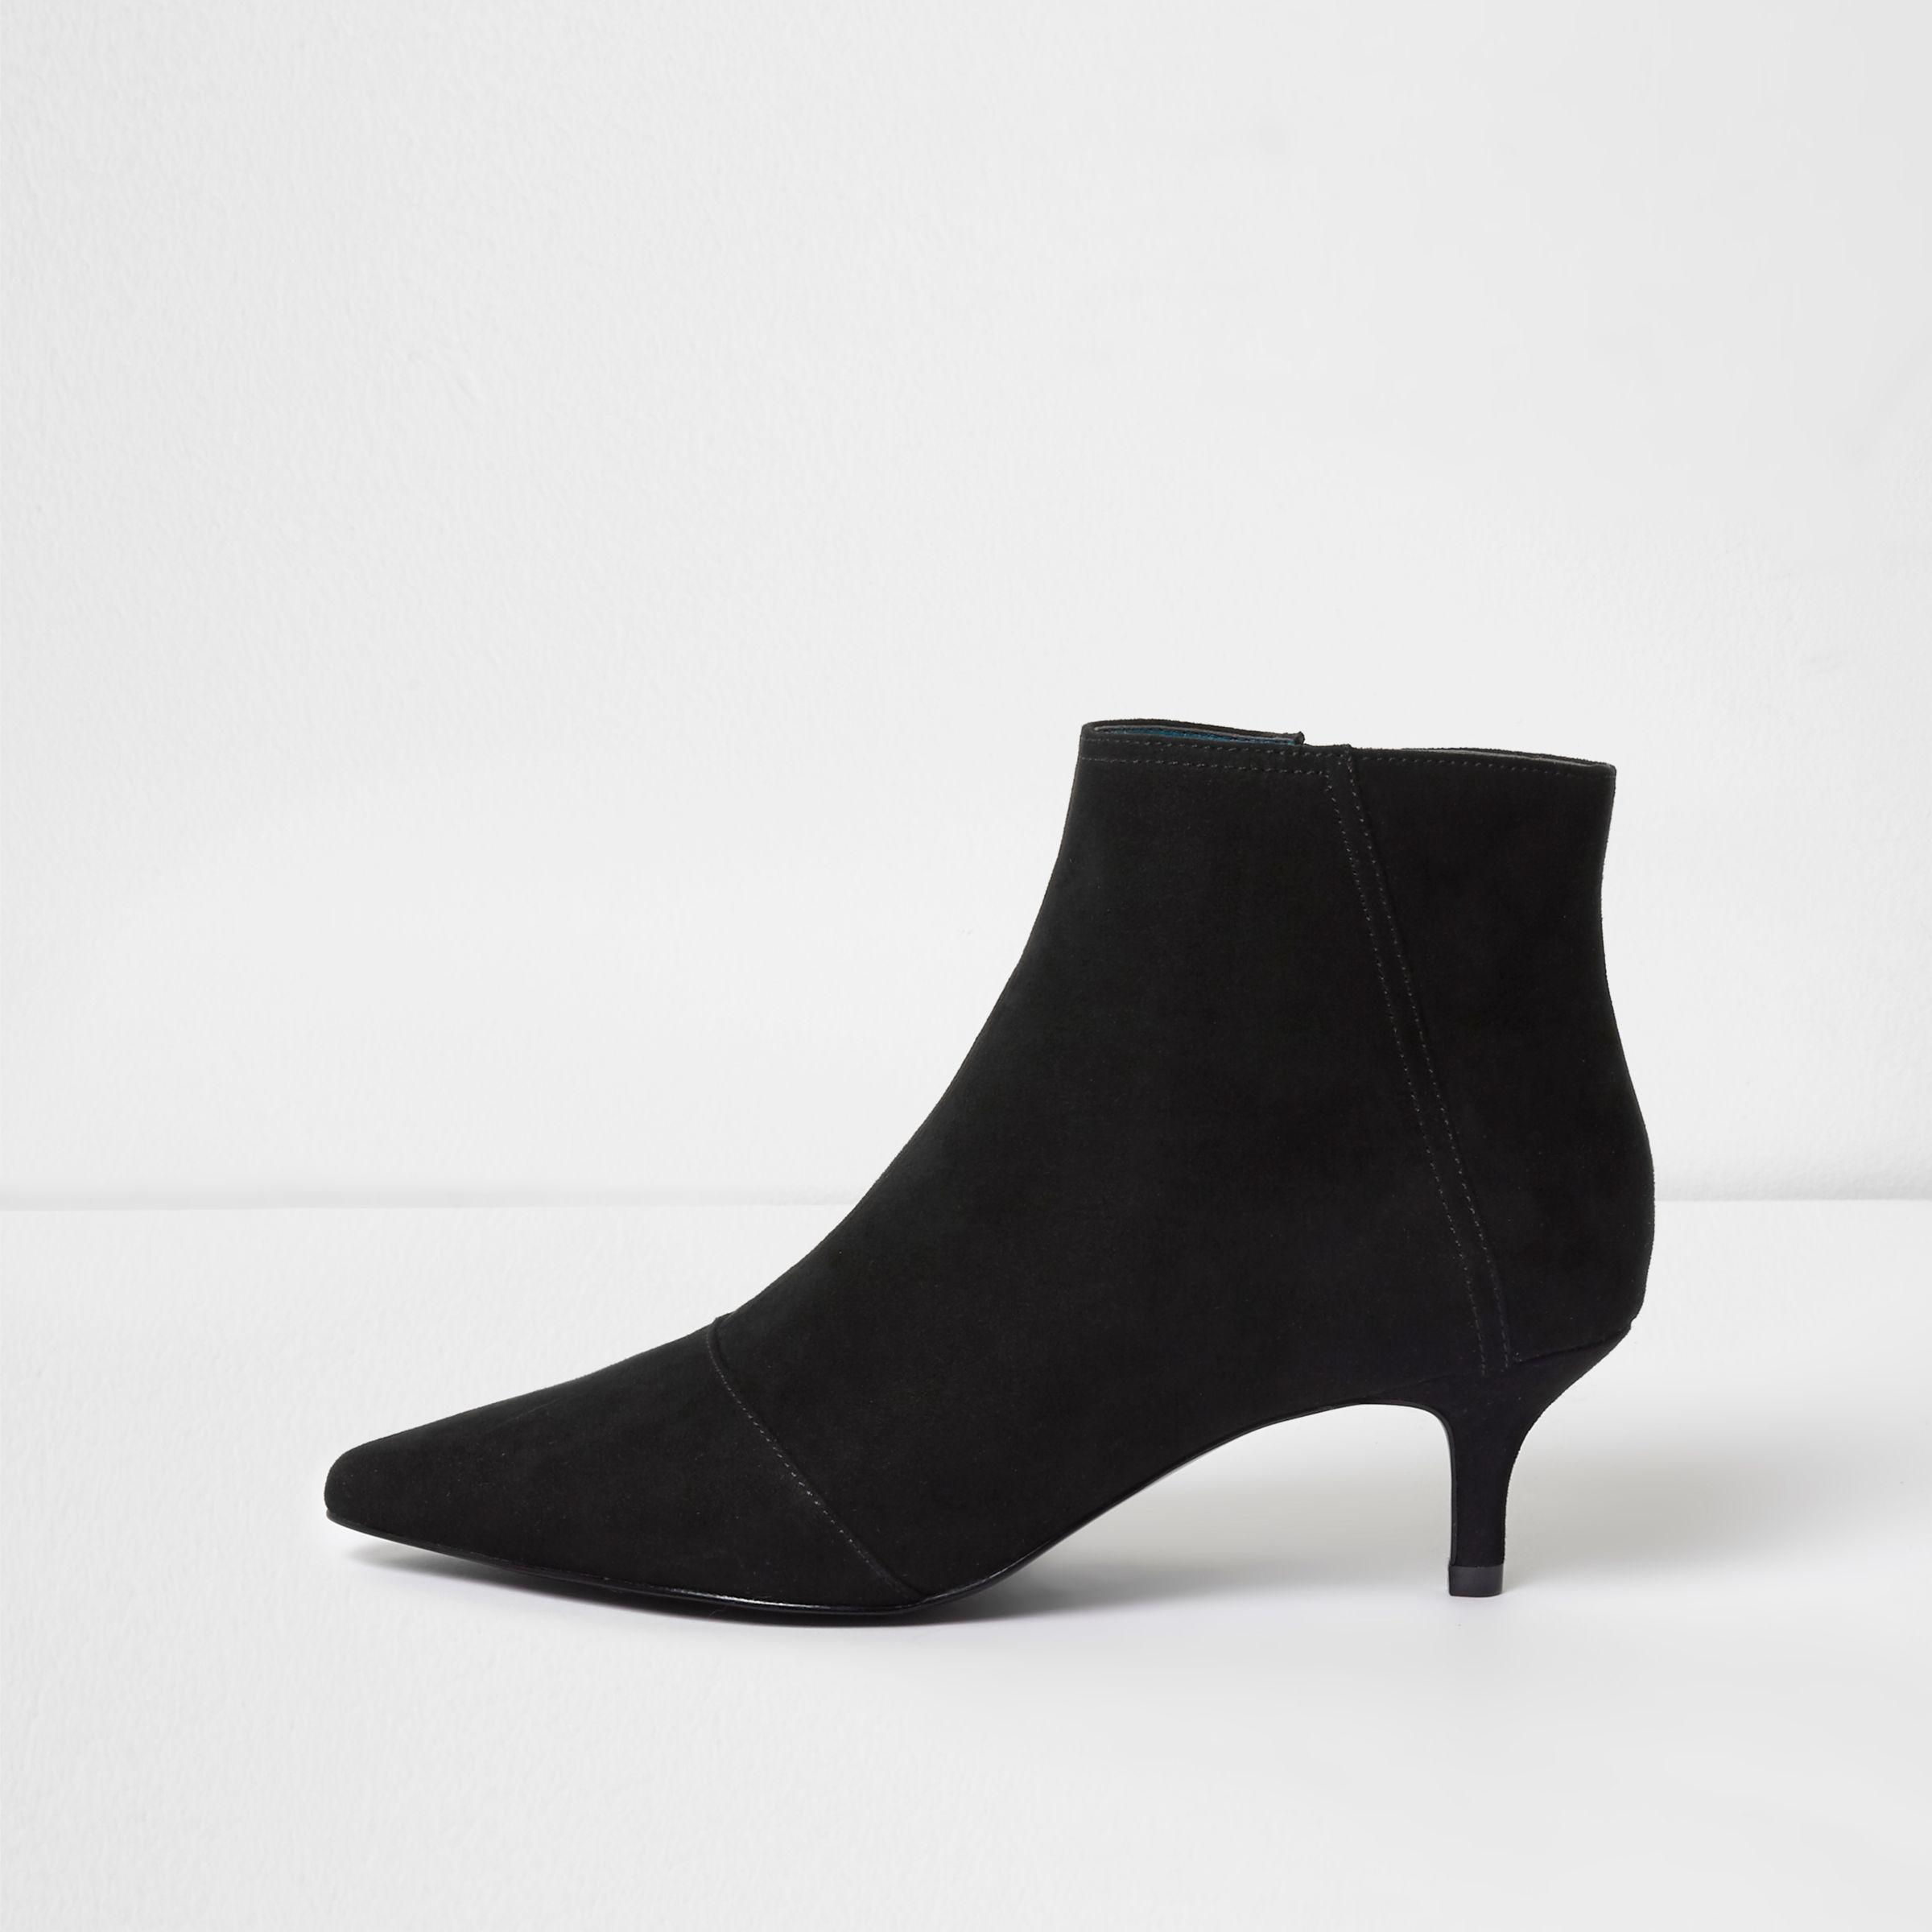 208e3d0cb31e River Island Black Pointed Kitten Heel Boots in Black - Lyst